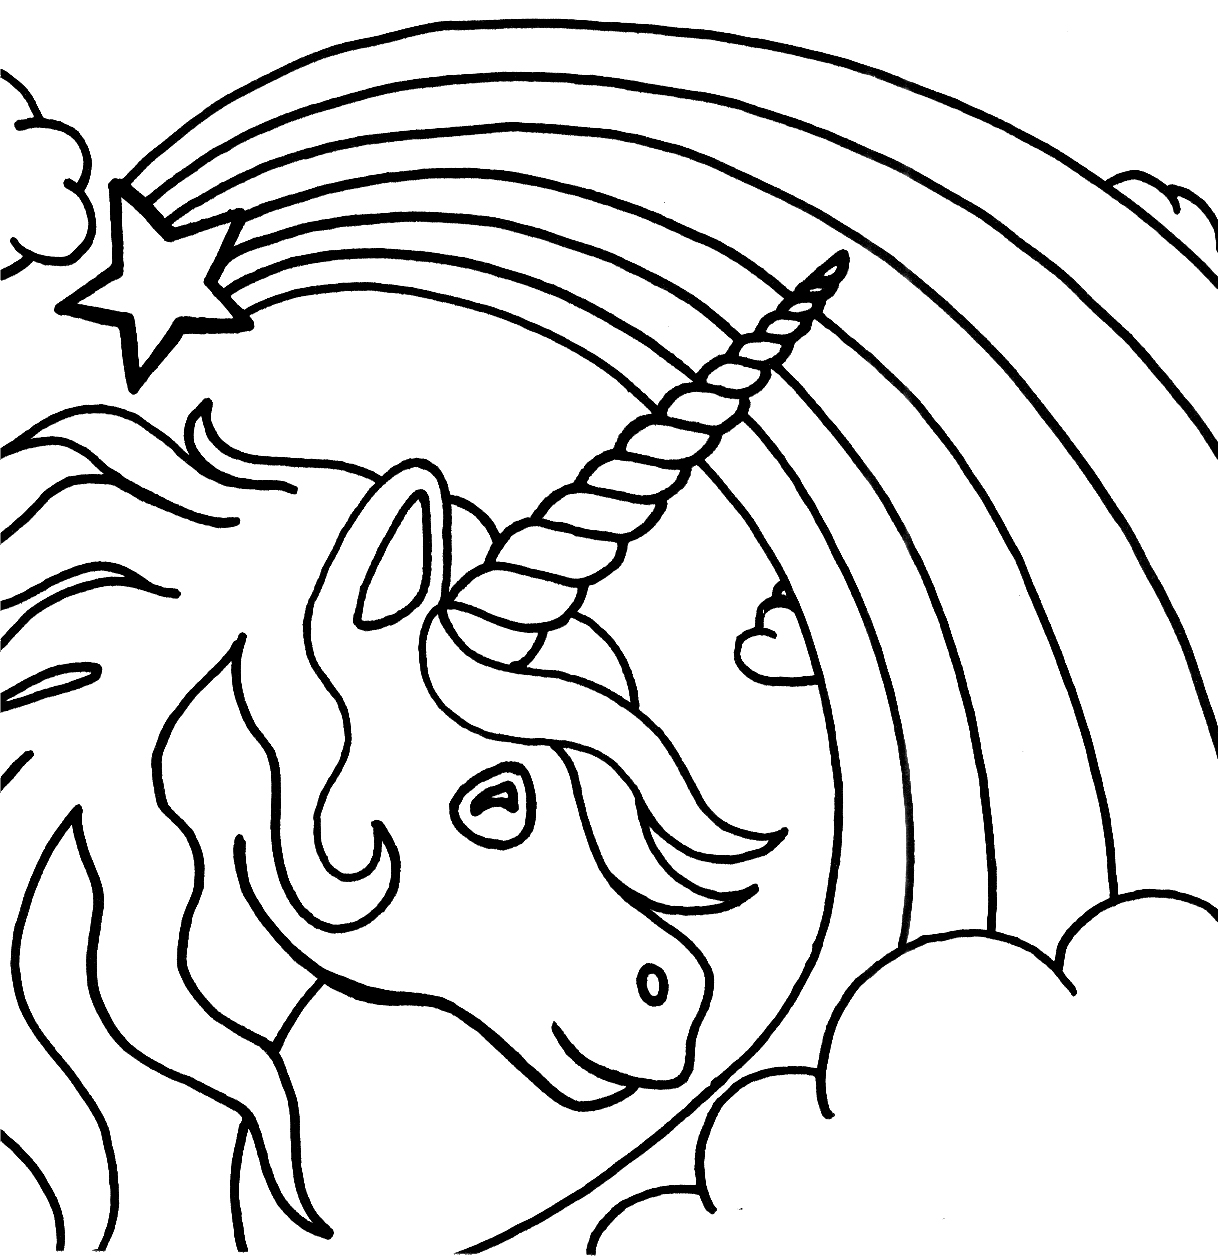 unicorn coloring pages for kids - Coloring Pictures For Kids